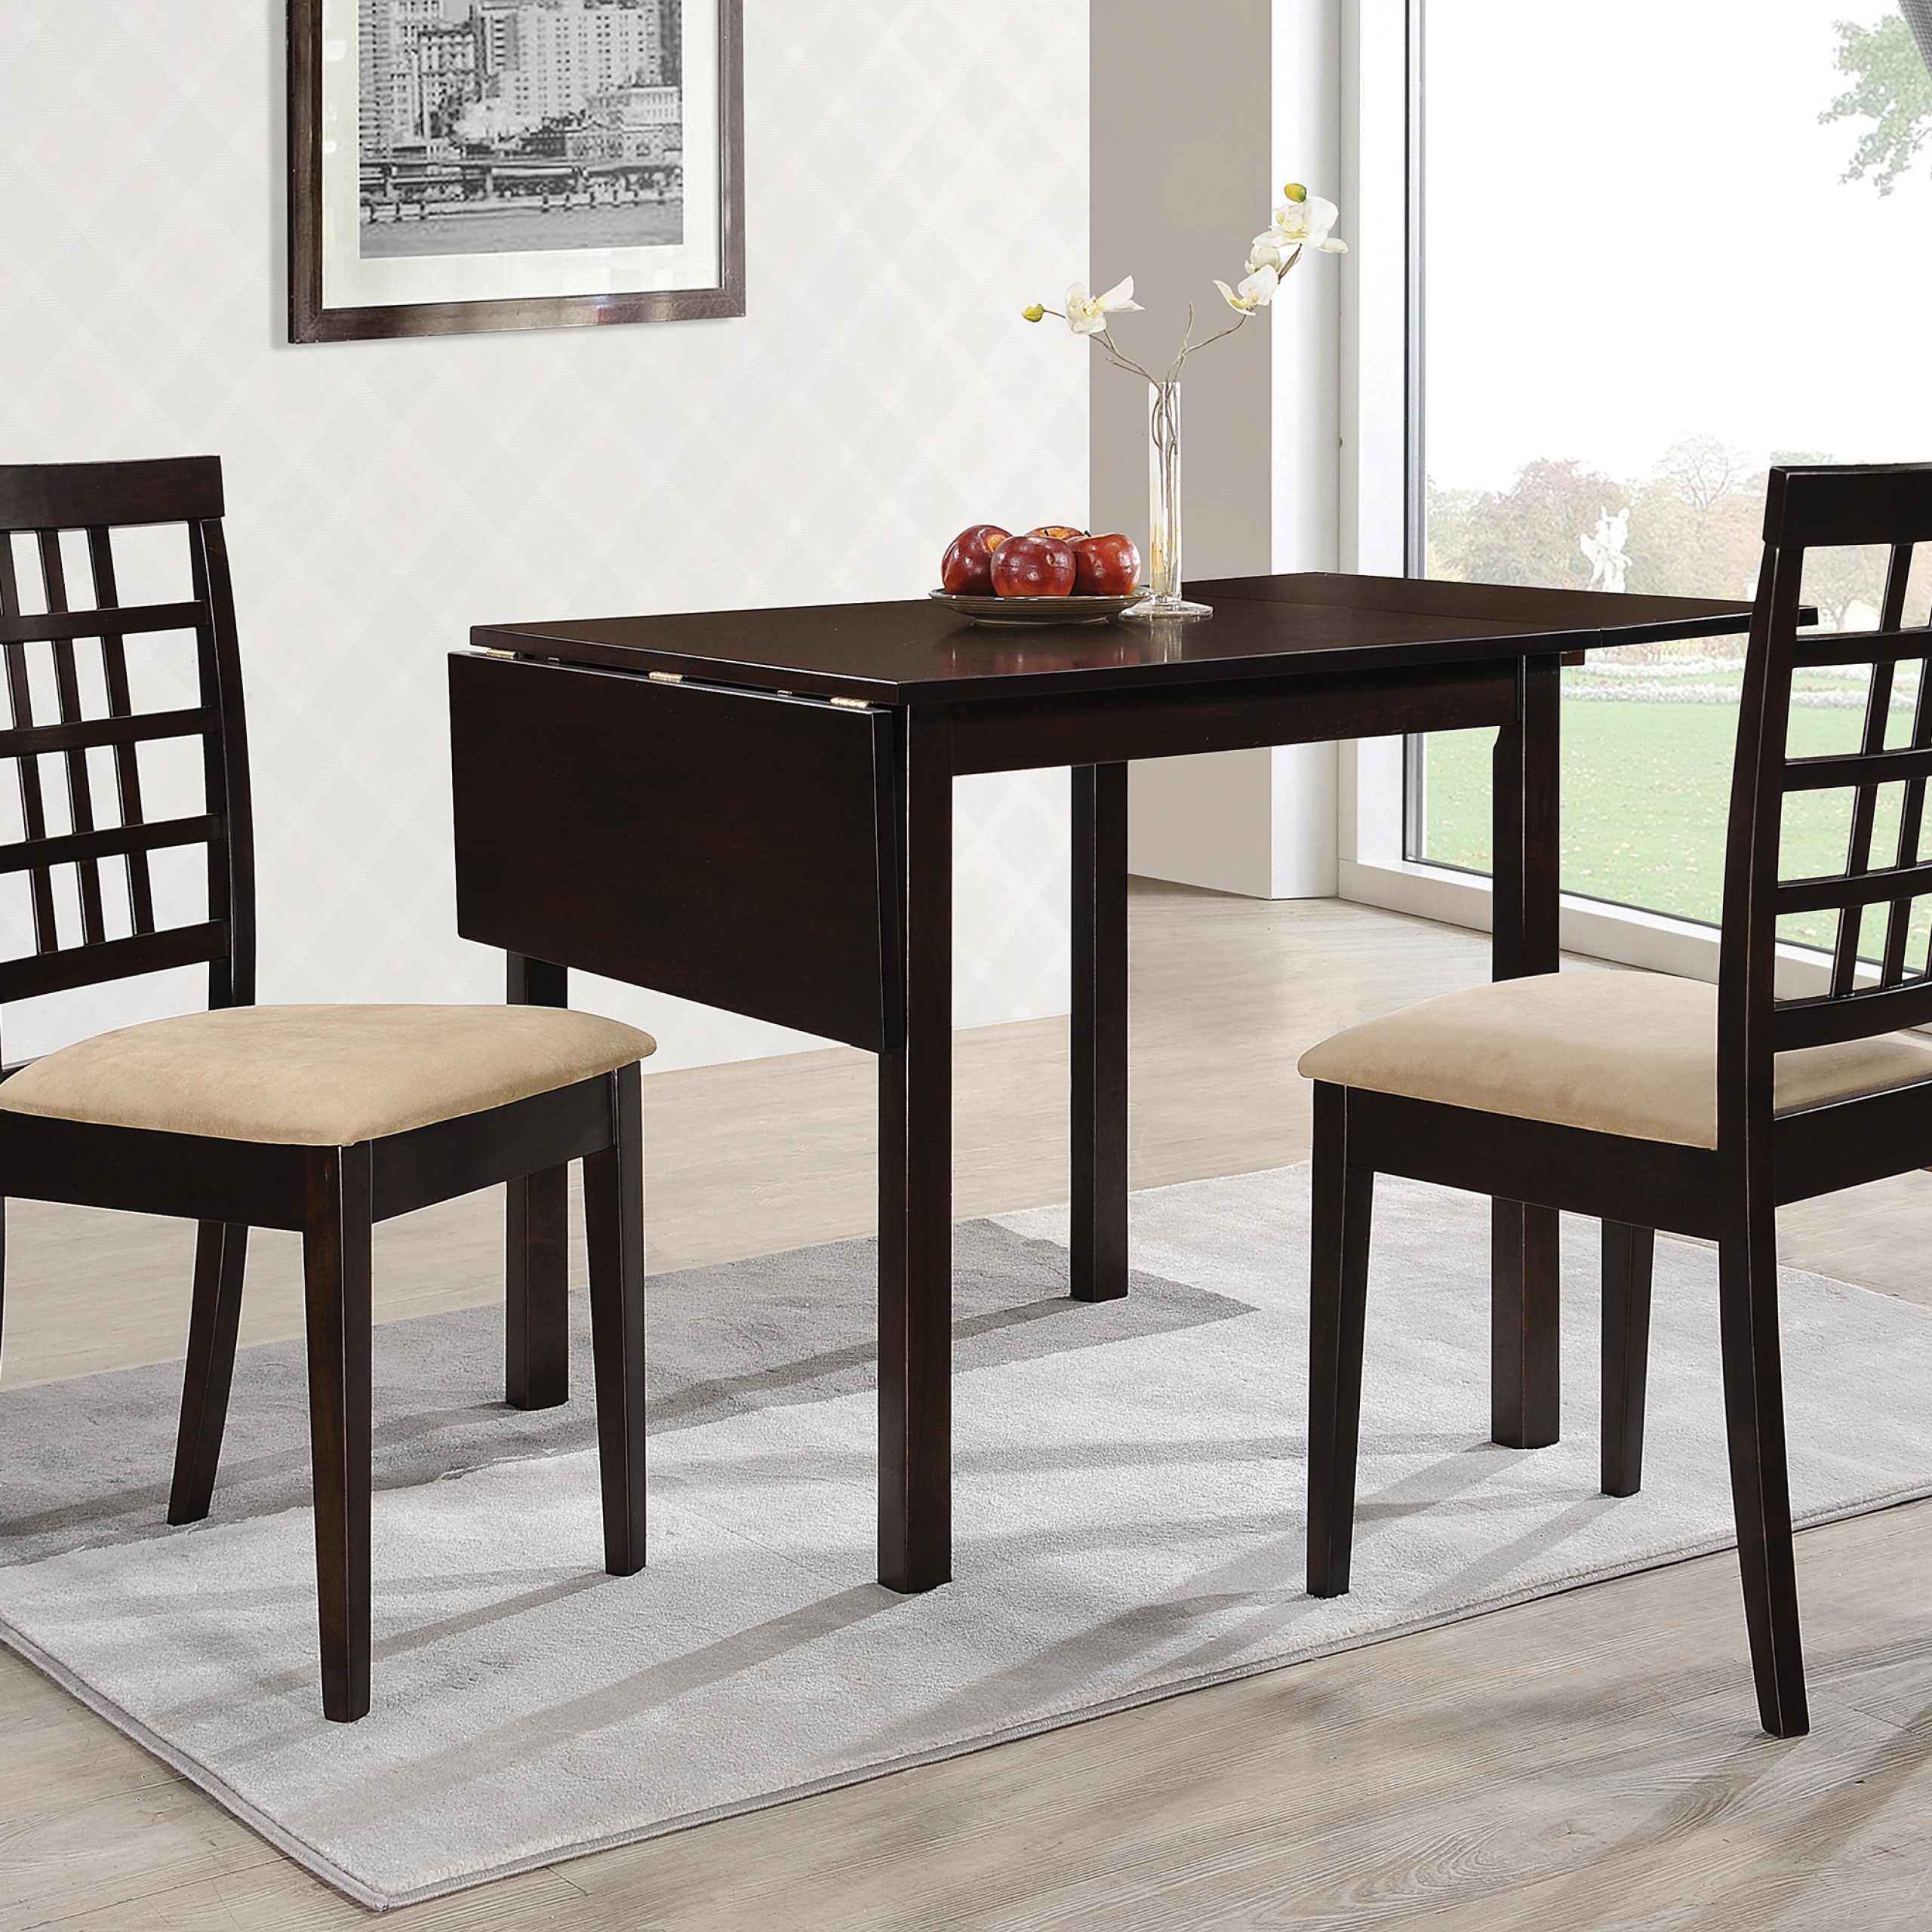 Newest Transitional Drop Leaf Casual Dining Tables For Kelso Rectangular Dining Table With Drop Leaf Cappuccino (View 18 of 30)